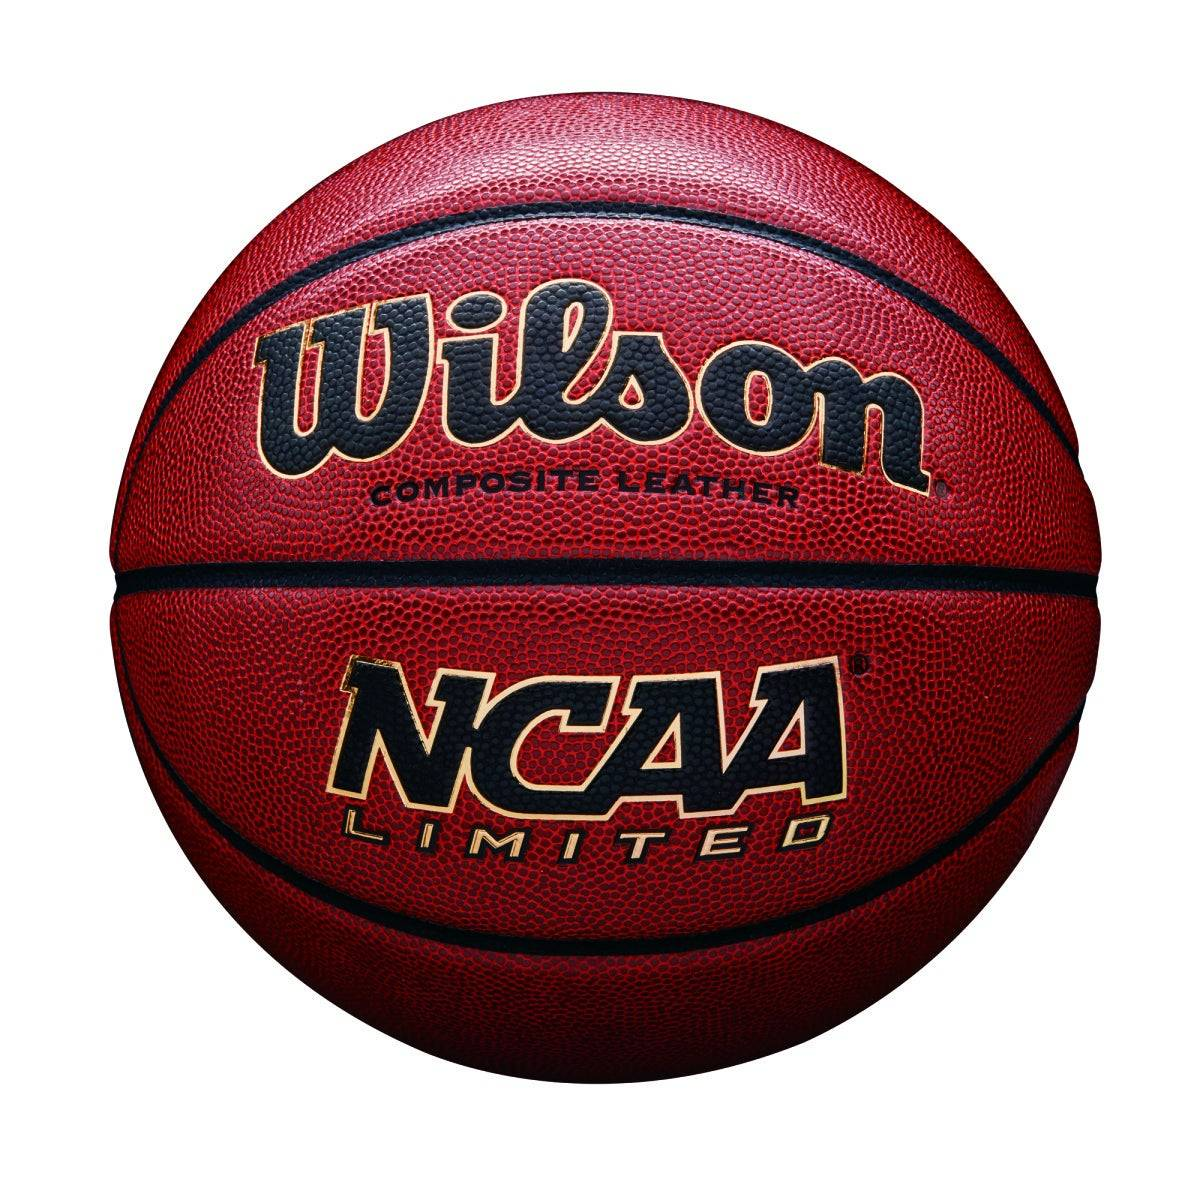 """Wilson NCAA Limited Basketball in Brown - Size: Intermediate - 28.5""""  - Unisex - Brown - Size: Intermediate - 28.5"""""""